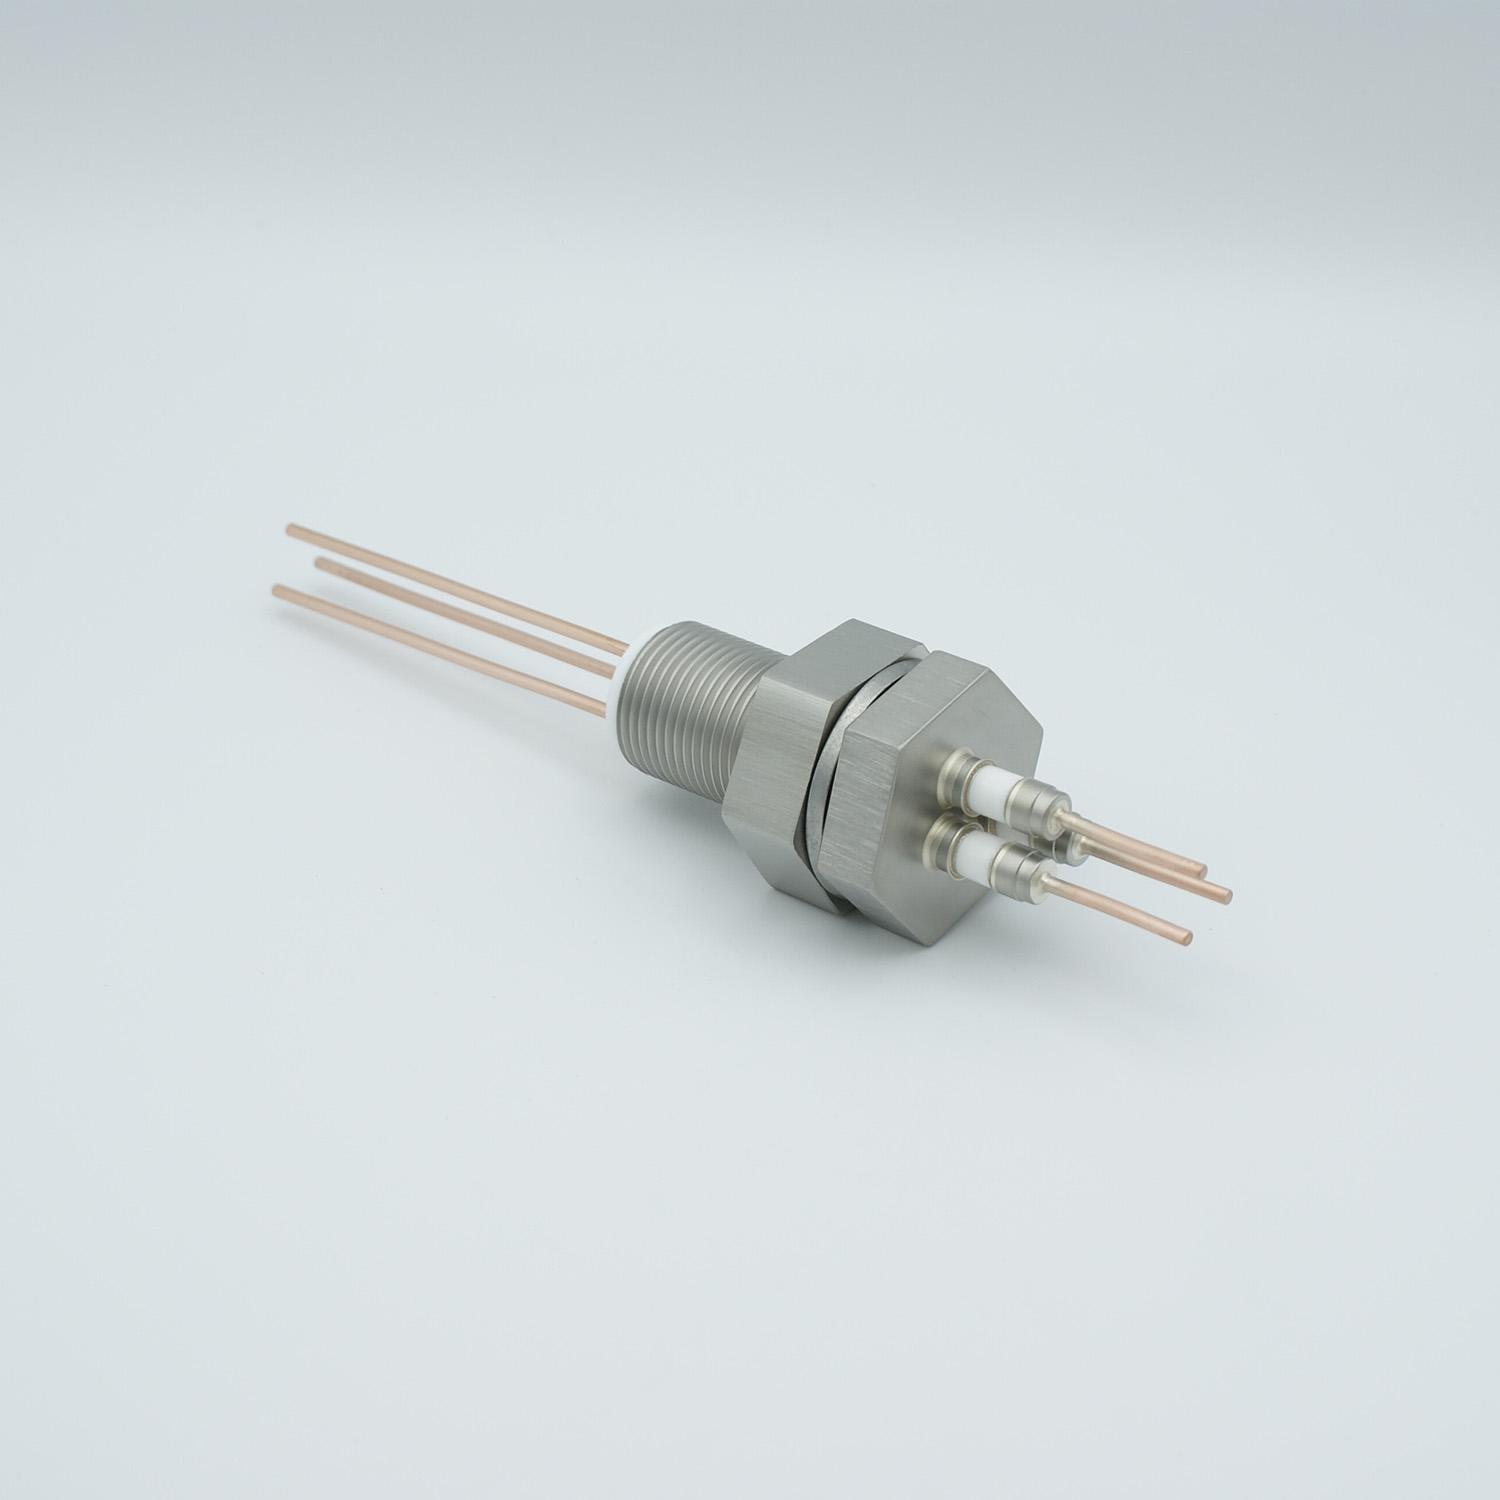 3 pins feedthrough 2000Volt / 30 Amp. Copper conductor, base plate fitting